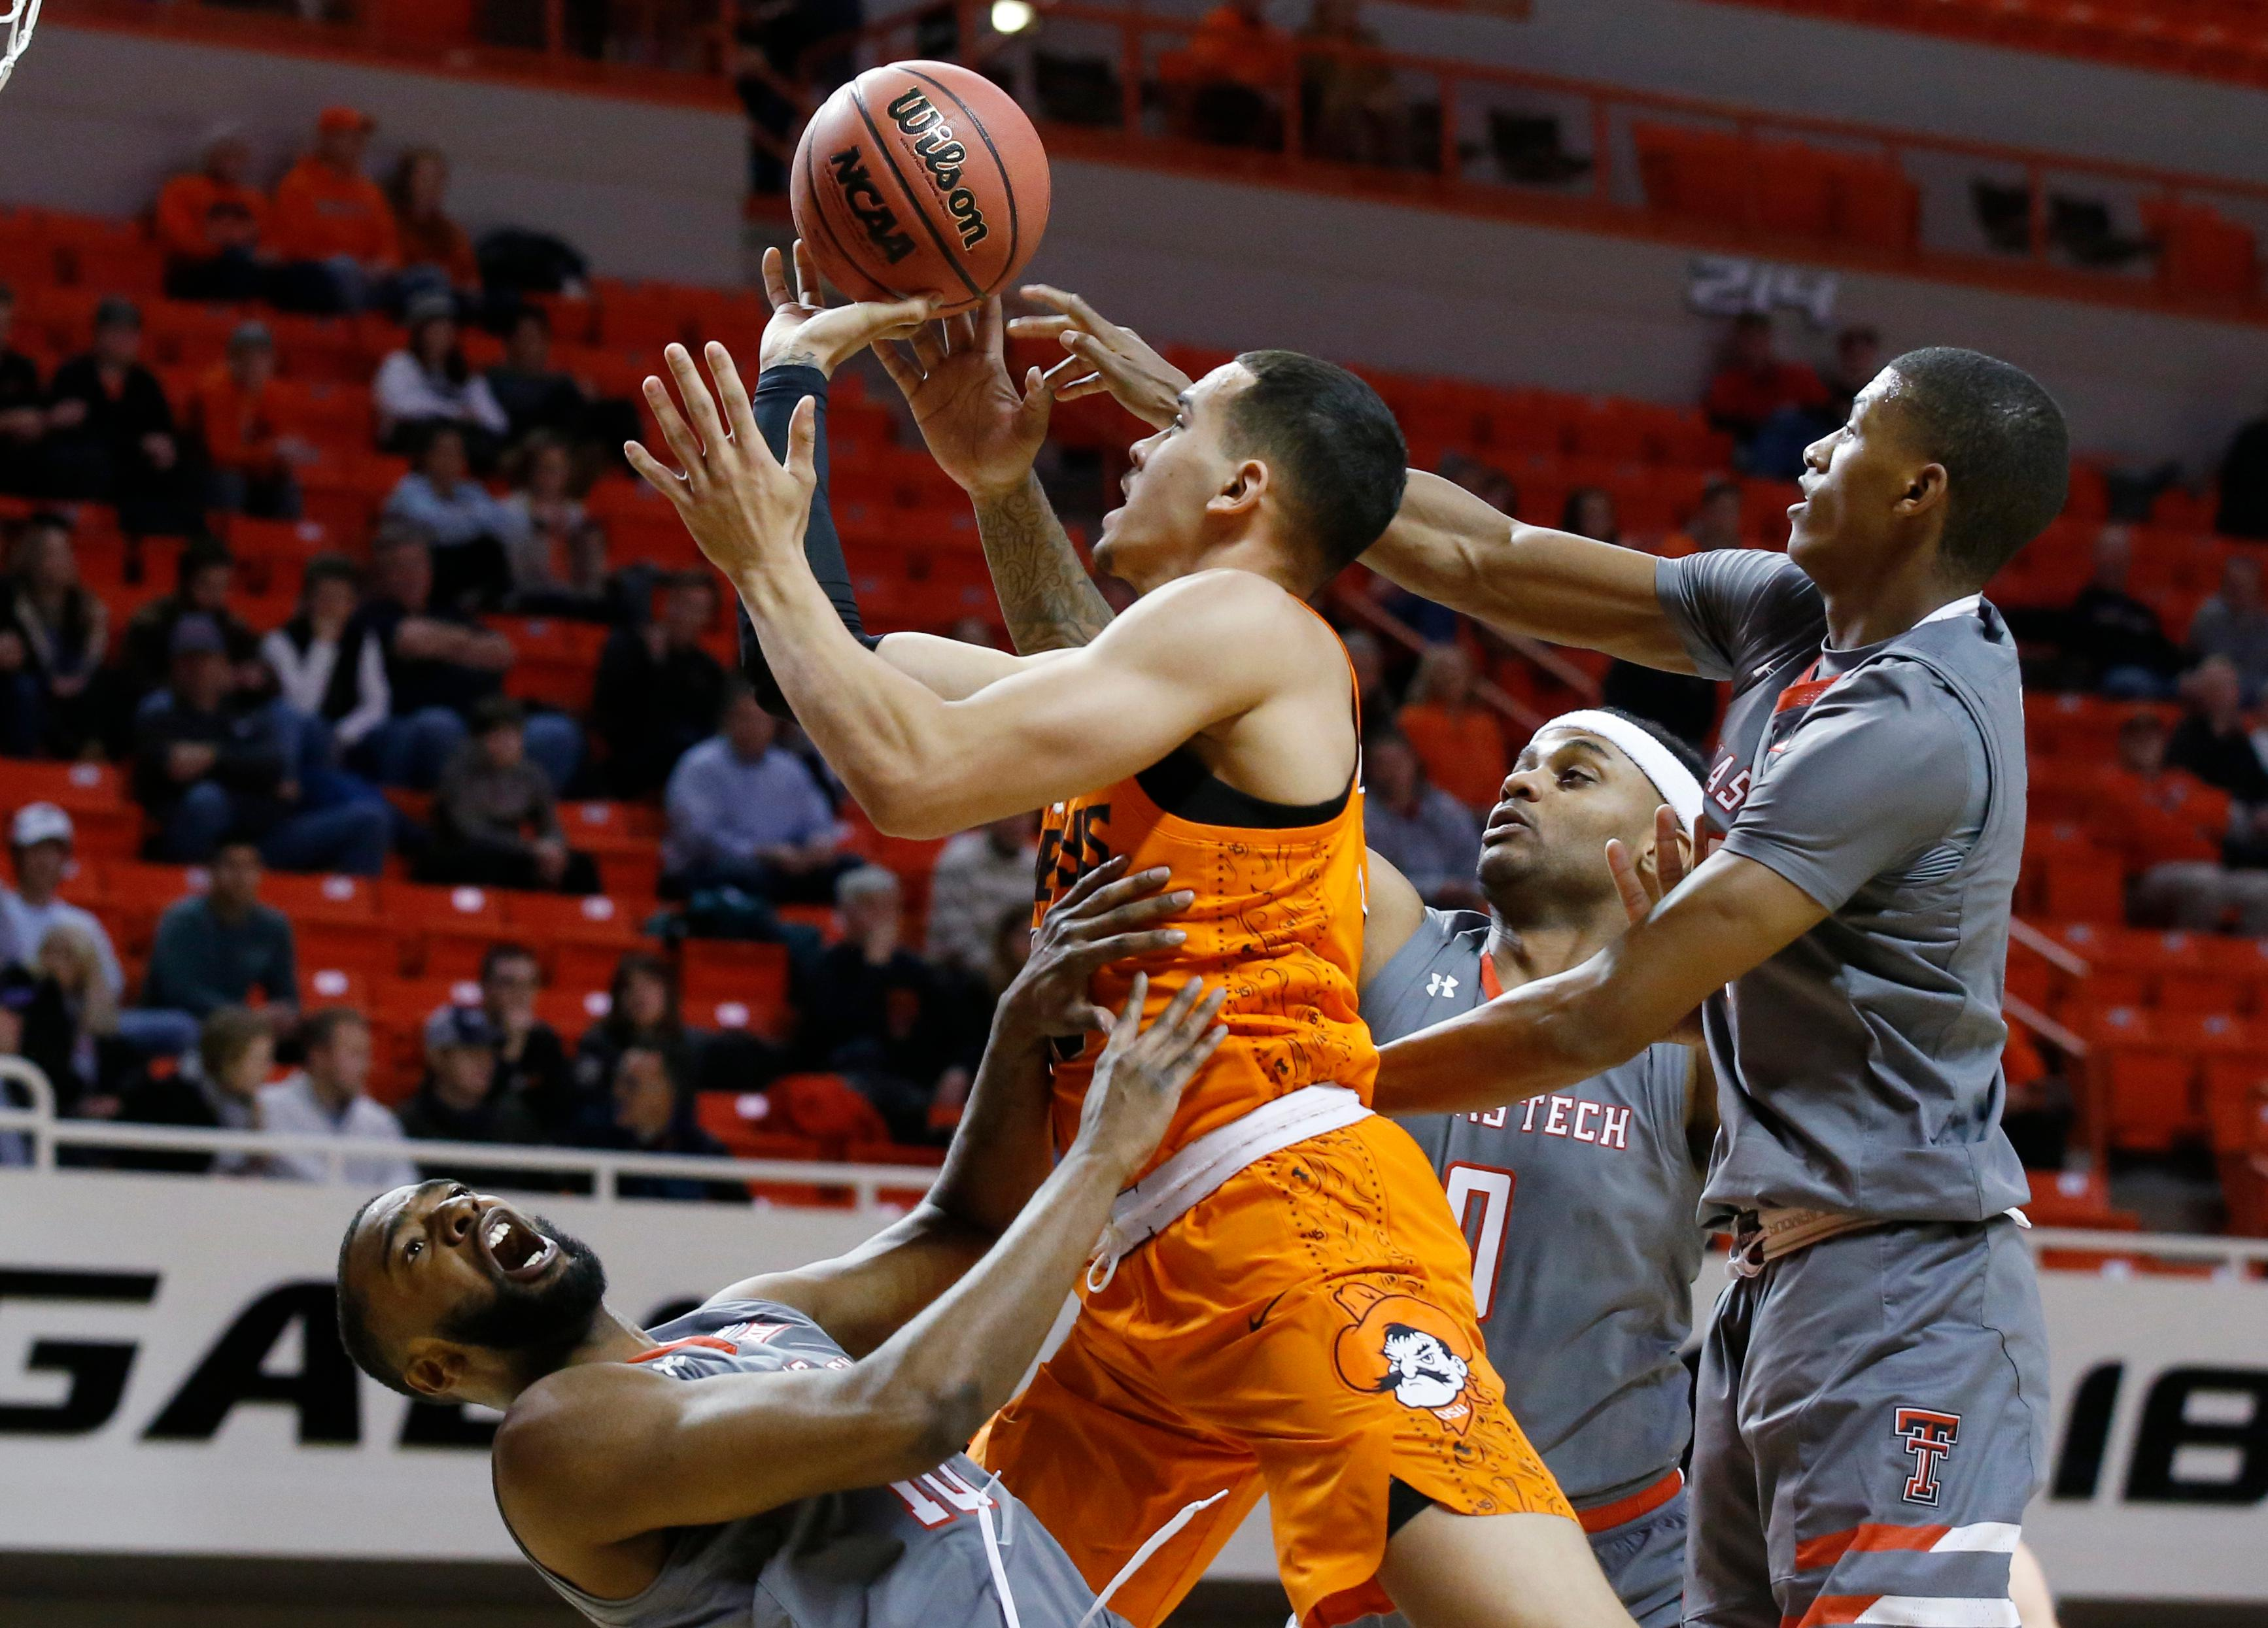 Oklahoma State guard Jeffrey Carroll, center, fouls Texas Tech guard Niem Stevenson, left, as he drives to the basket between Stevenson, guard Jarrett Culver, right, and forward Tommy Hamilton IV (0) during the first half of an NCAA college basketball game in Stillwater, Okla., Wednesday, Feb. 21, 2018. (AP Photo/Sue Ogrocki)